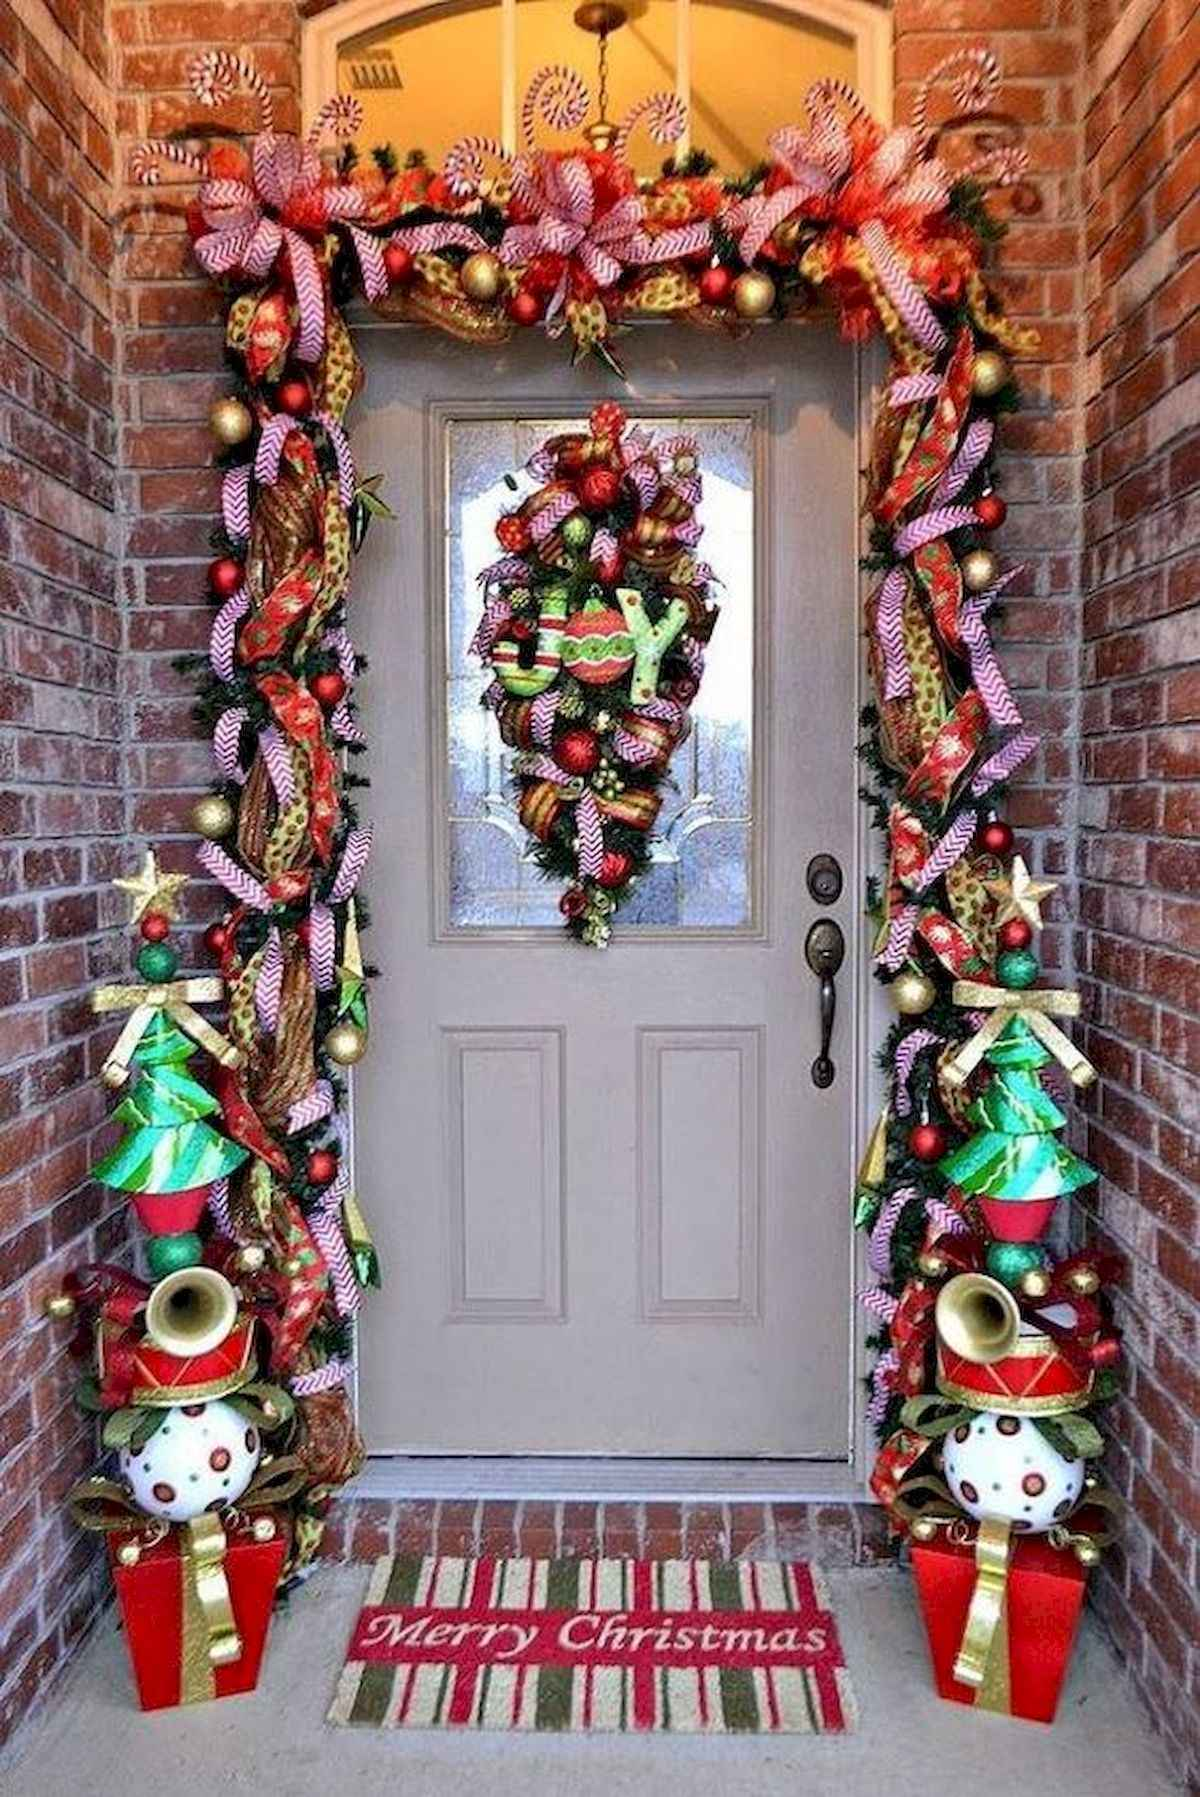 50 stunning front porch christmas lights decorations ideas (16)